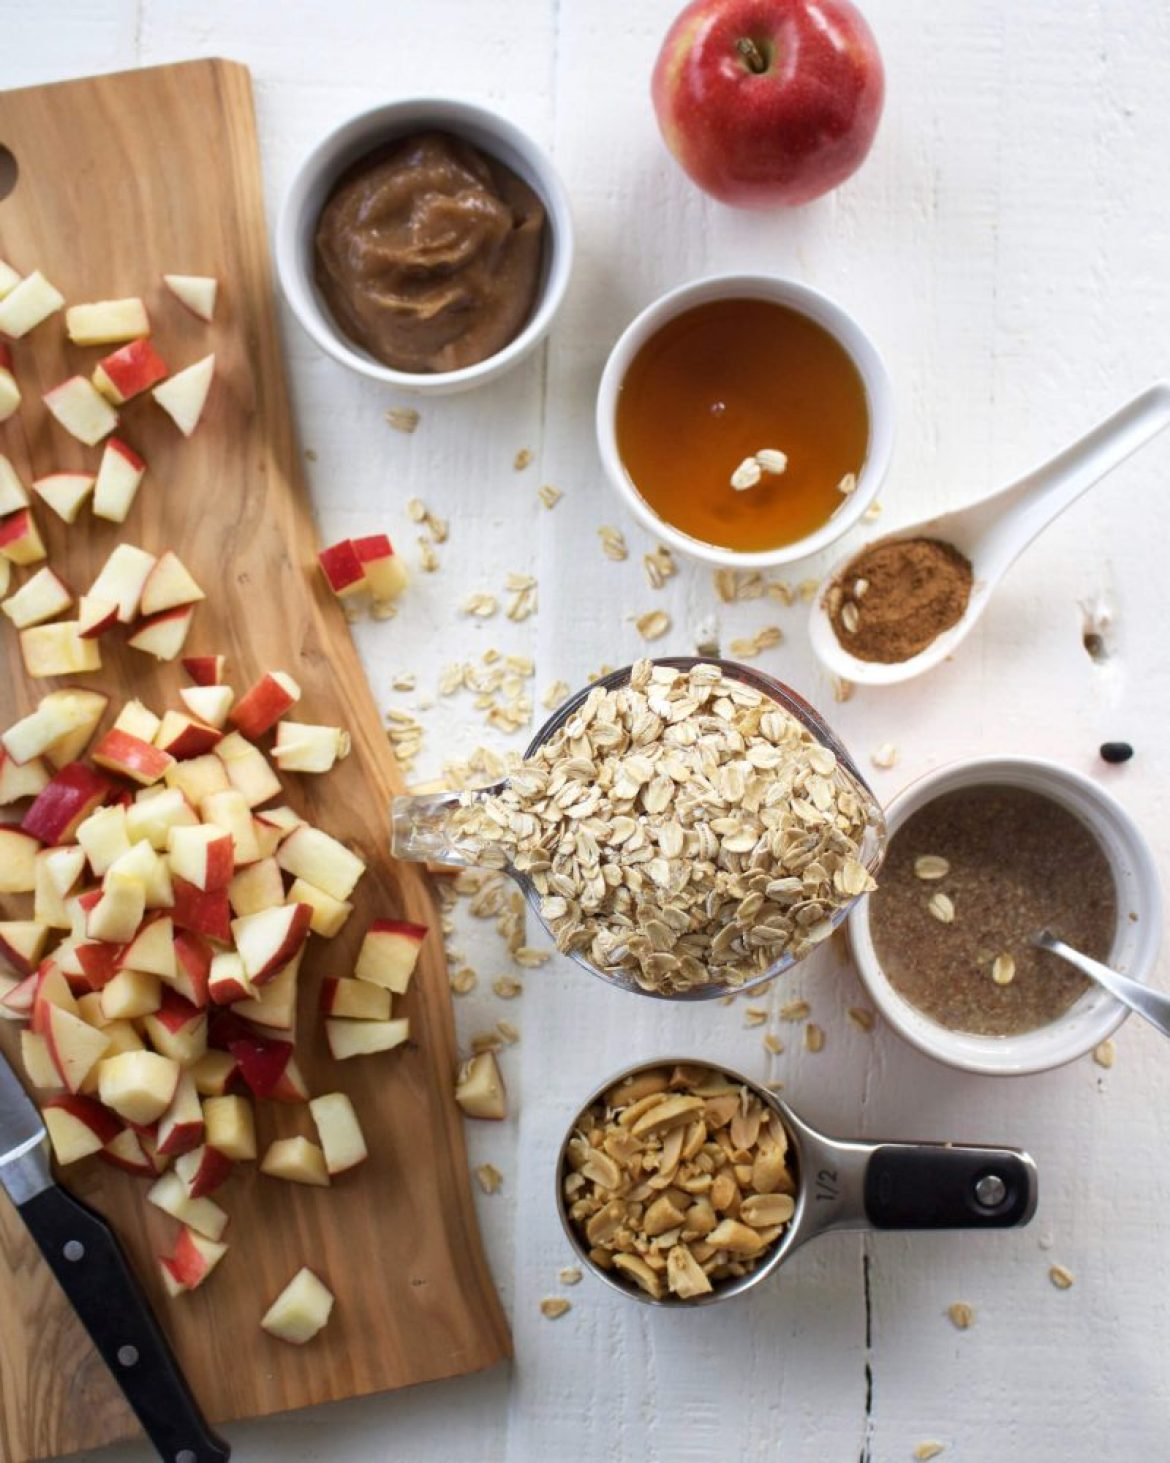 Apple Baked Oatmeal with Vegan Caramel Sauce